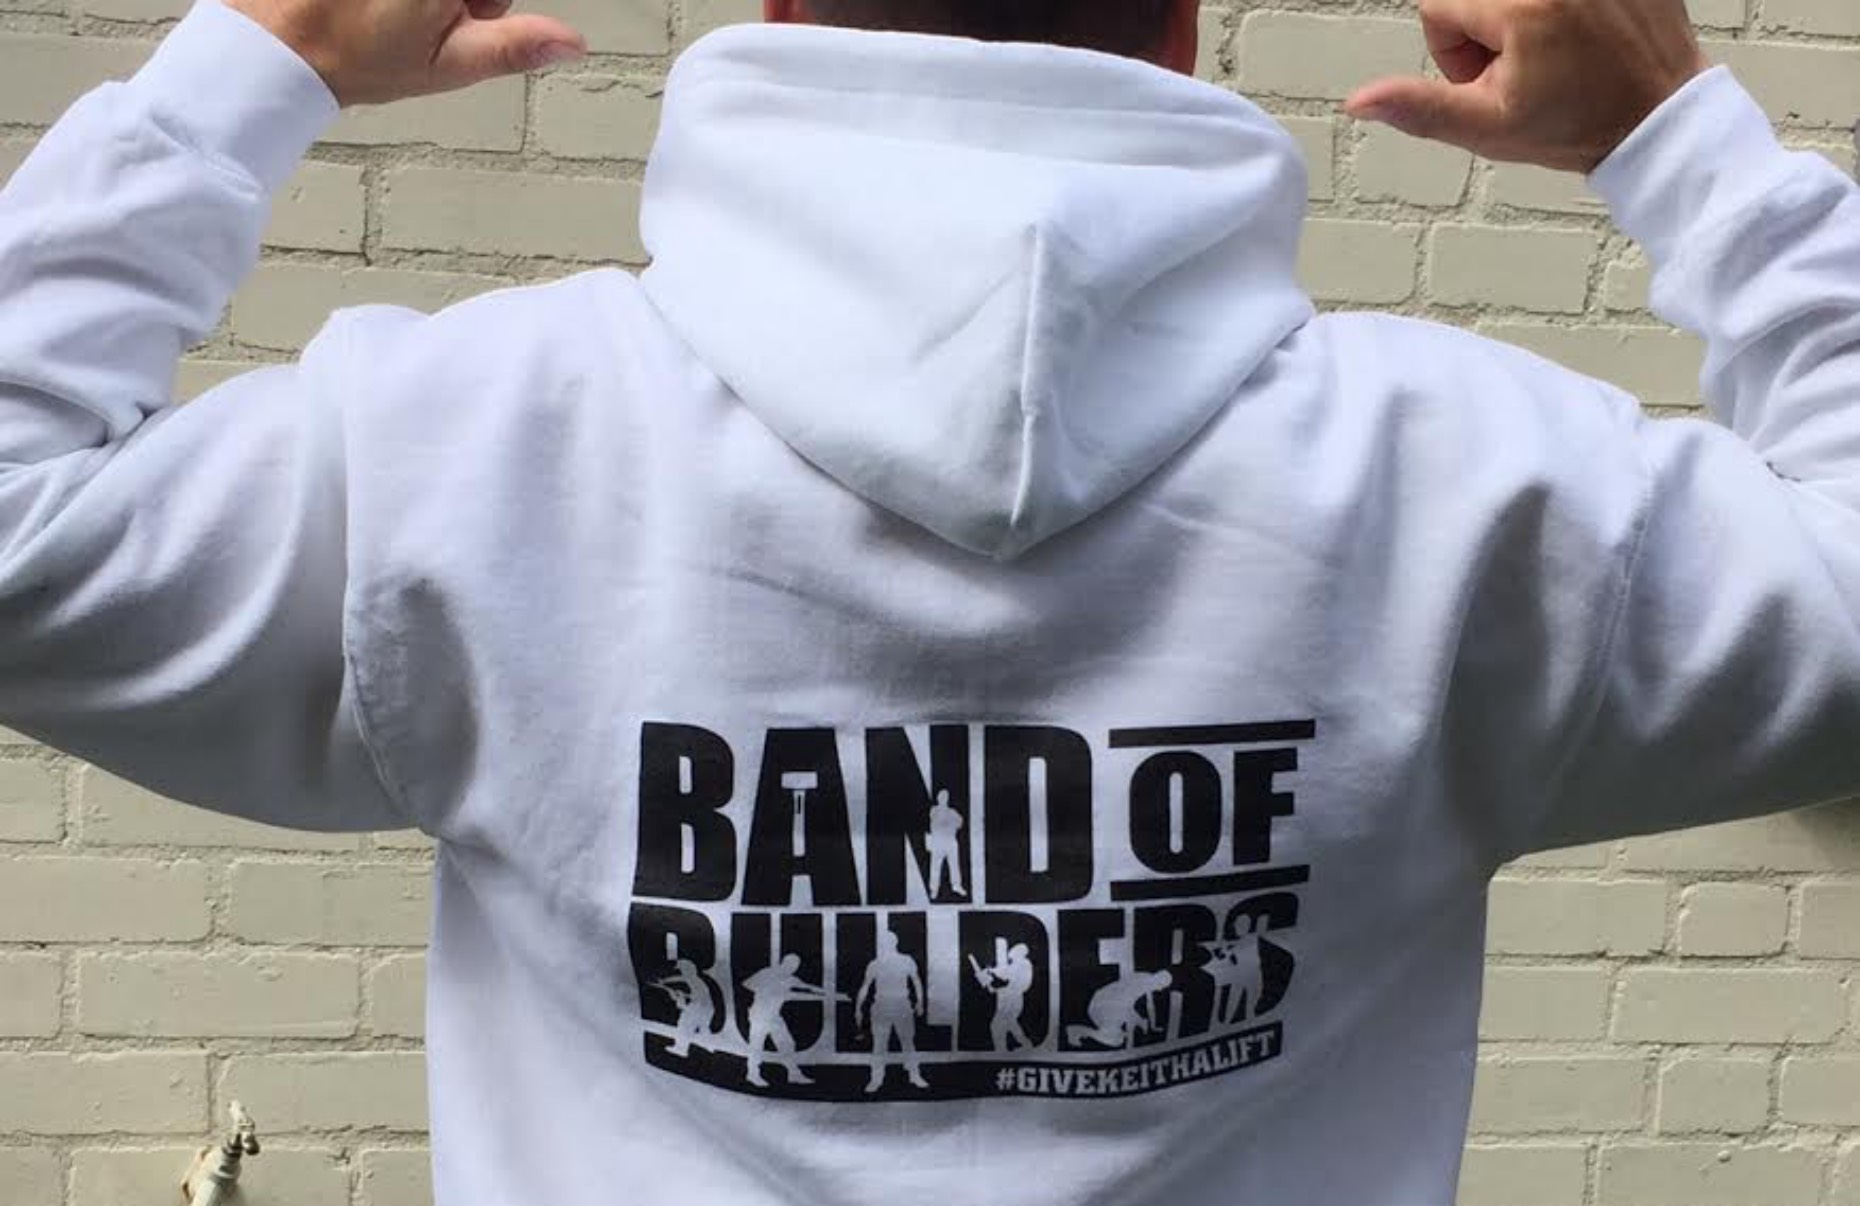 Work colleagues are selling Band of Builders t-shirts and hoodies to raise money for Keith.